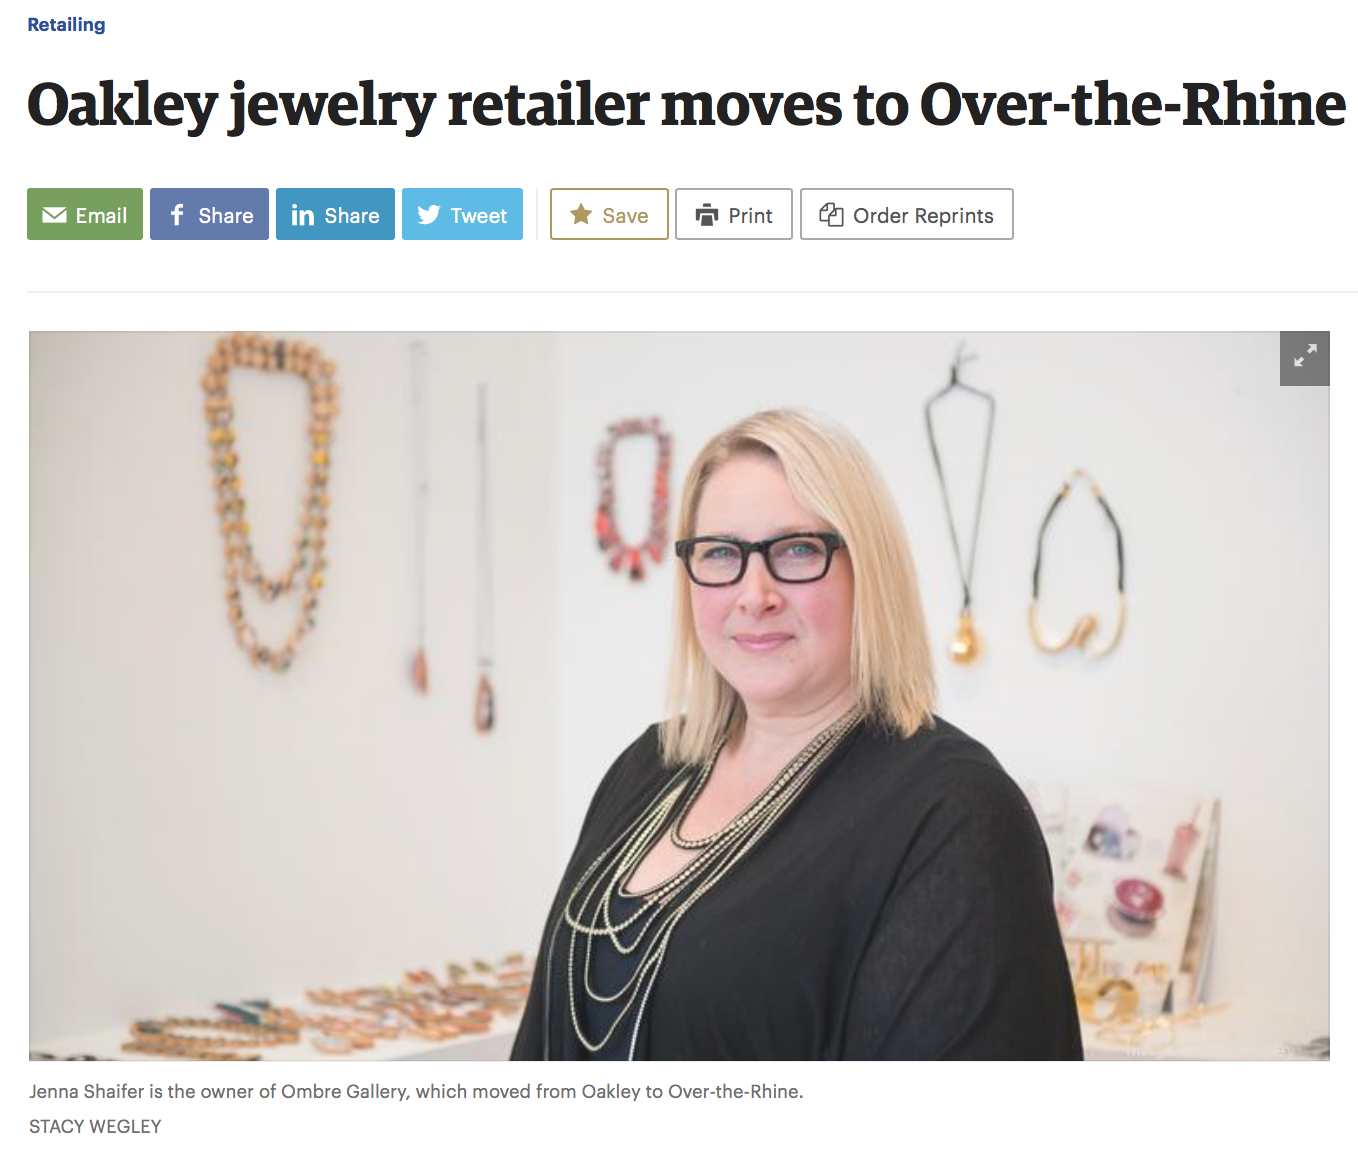 https://www.bizjournals.com/cincinnati/news/2018/09/05/oakley-jewelry-retailer-moves-to-over-the-rhine.html